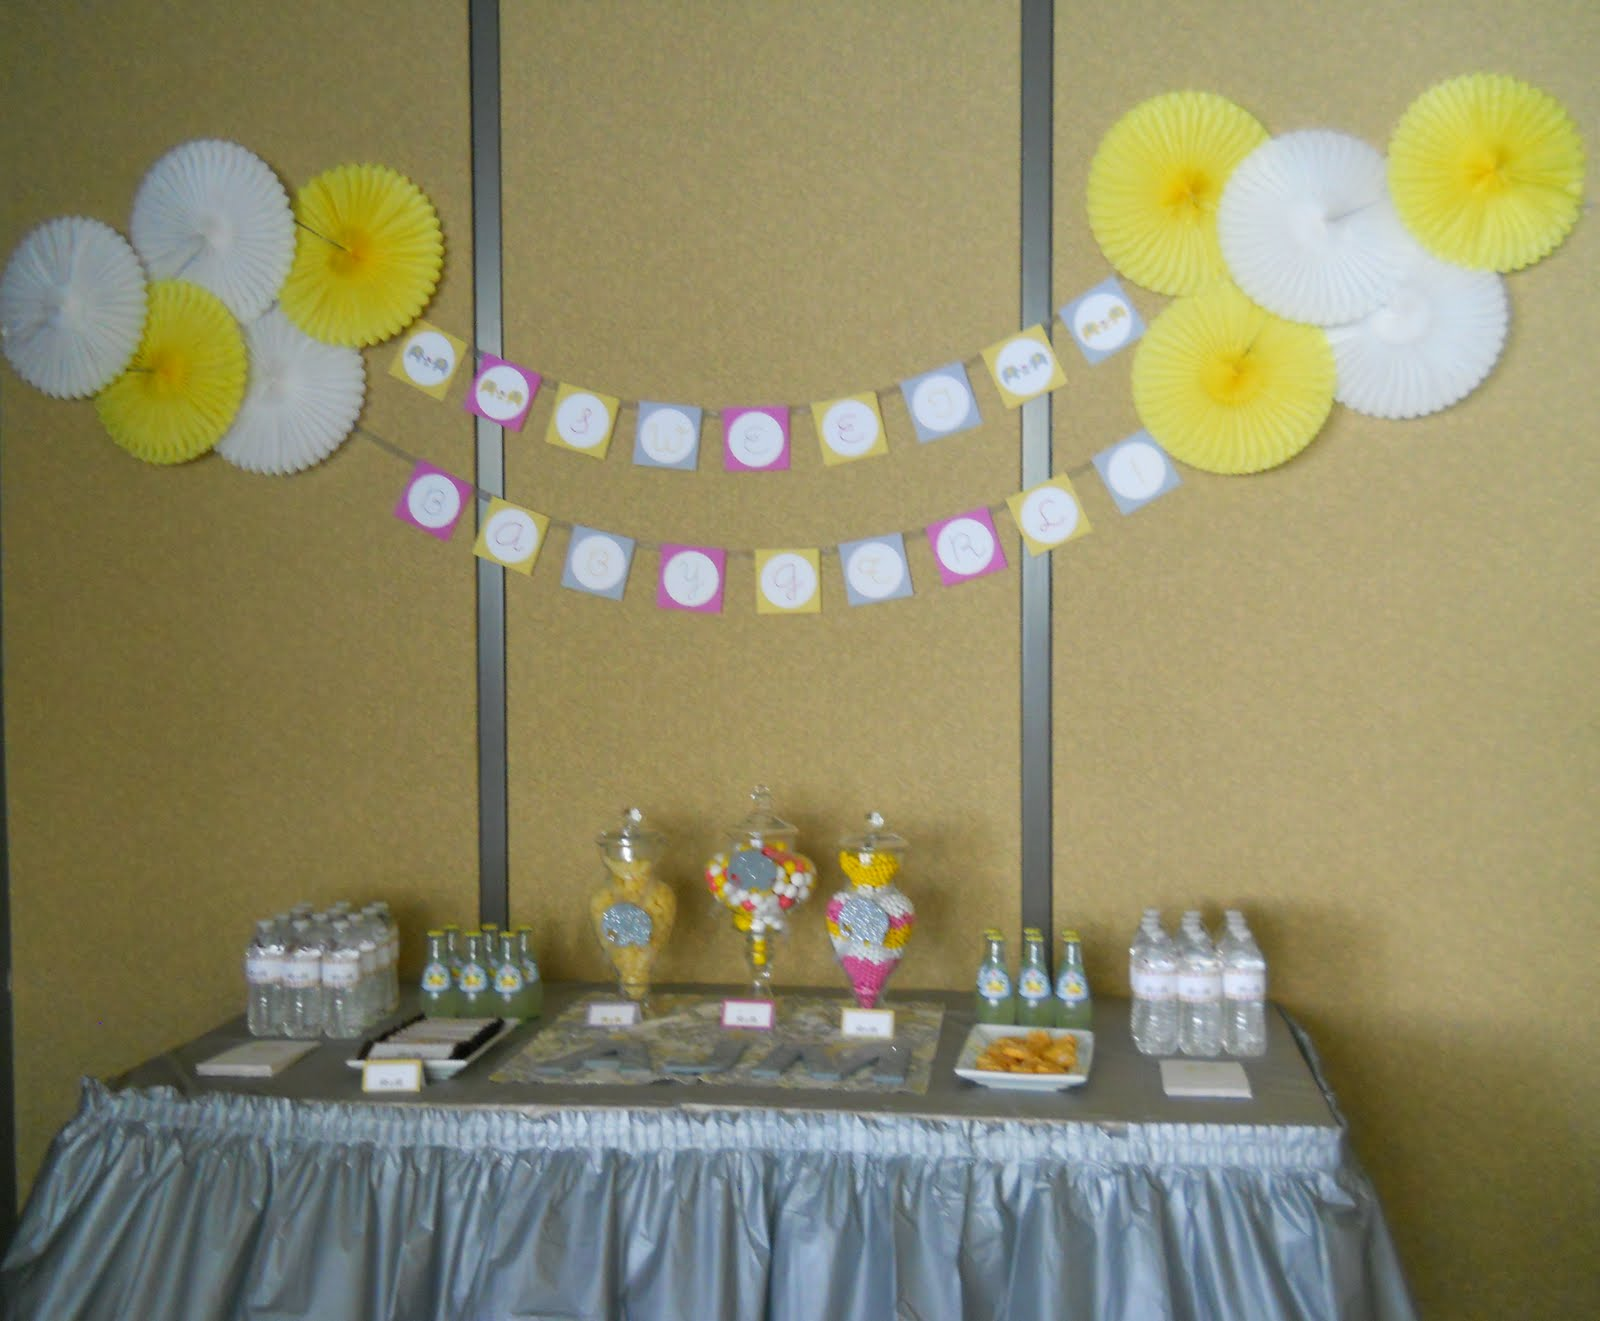 Baby shower decoration ideas interior home design for Home decorations for baby shower